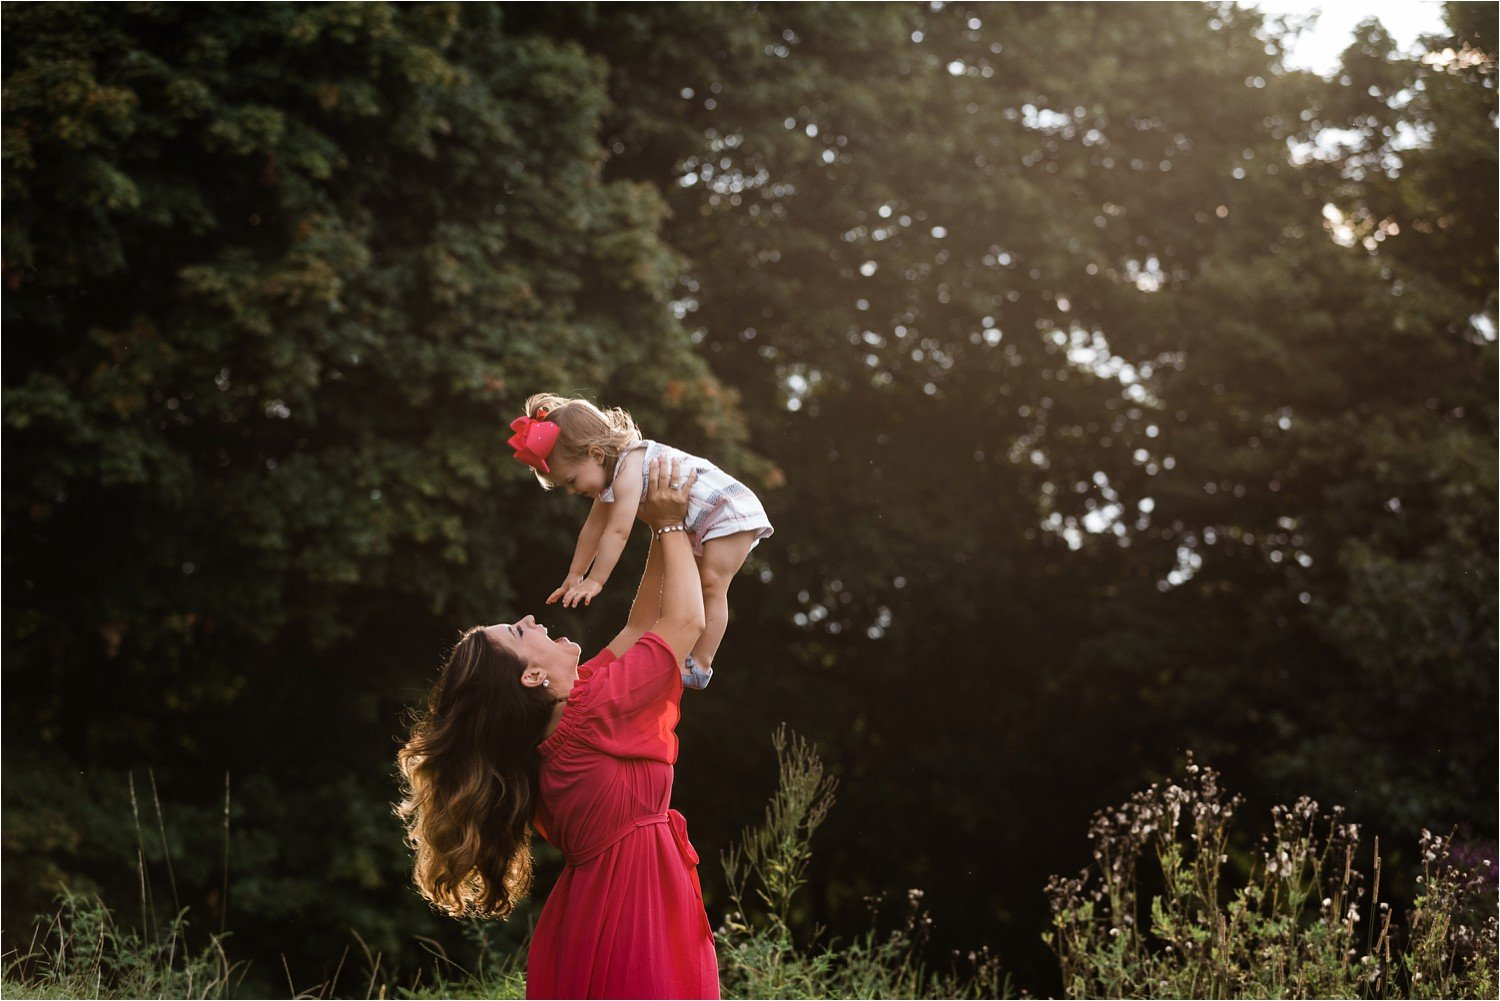 mother holding and dancing with daughter in open field in pittsburgh